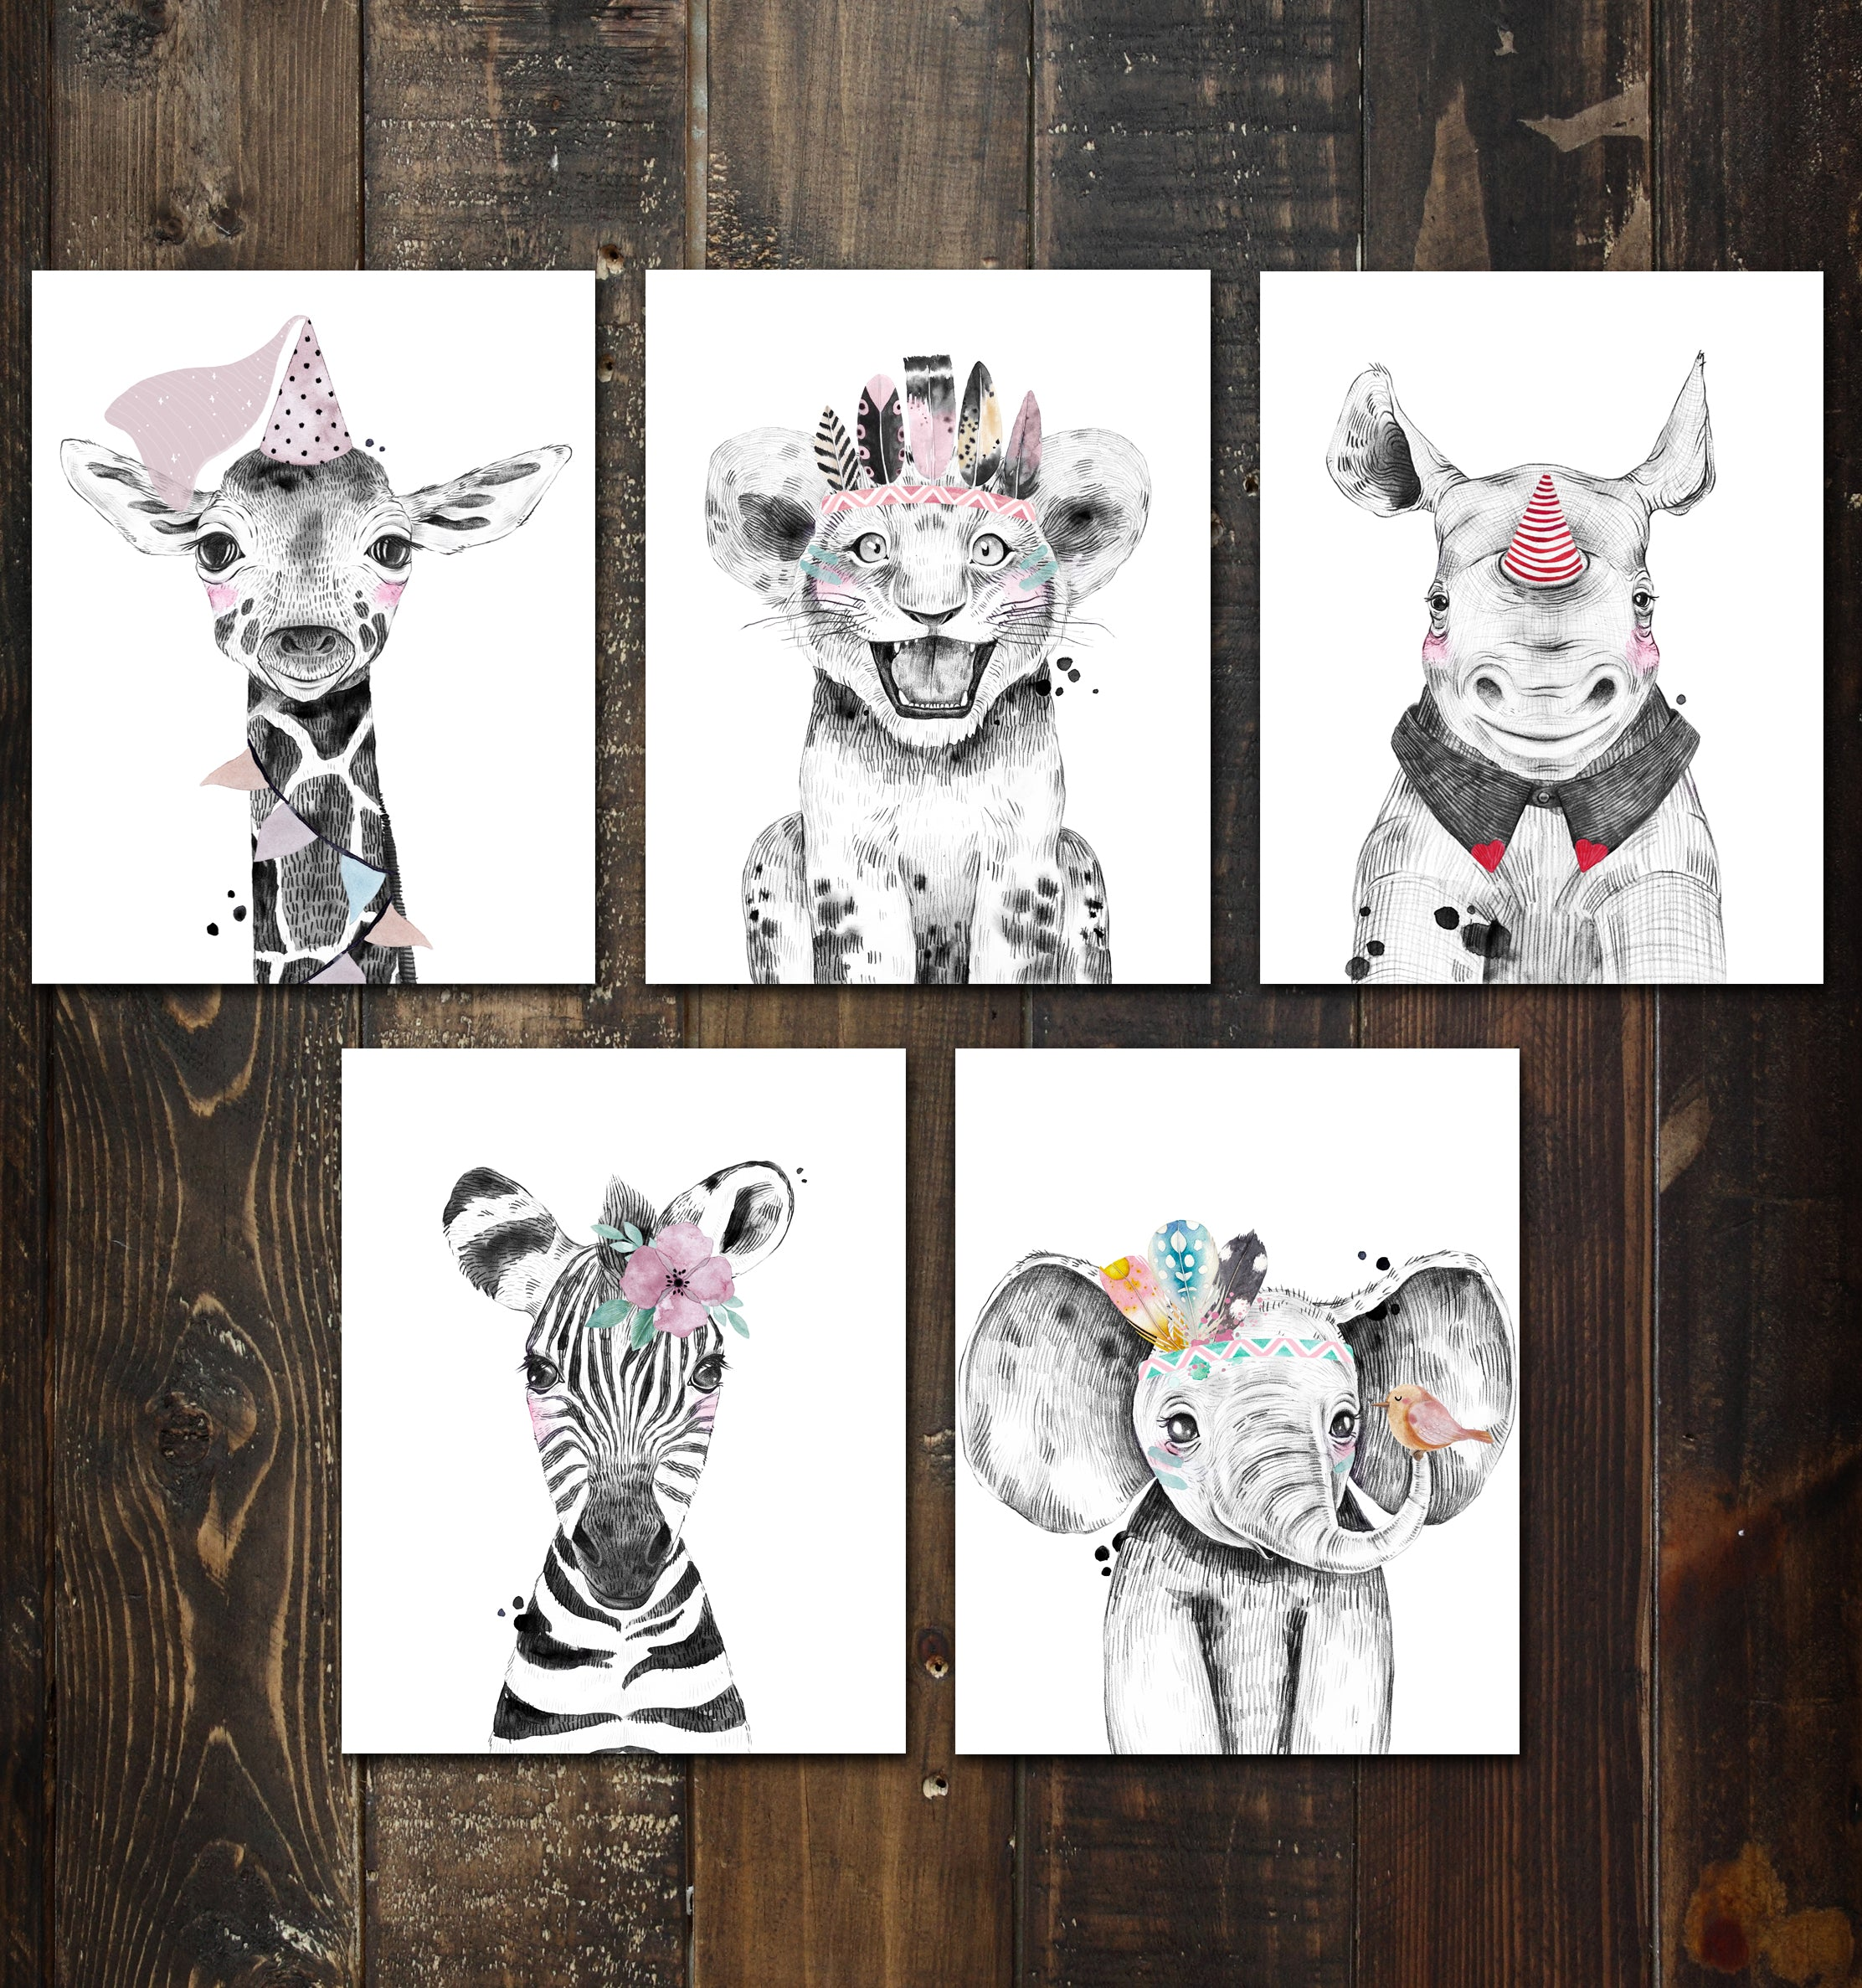 Nursery Safari Baby Animal Posters (set of 5) Prints. Unframed. Great gifts for Baby shower, Kids Bedroom or Bathroom Decor. Baby Elephant, Giraffe, Rhino, Lion and Zebra #P1022